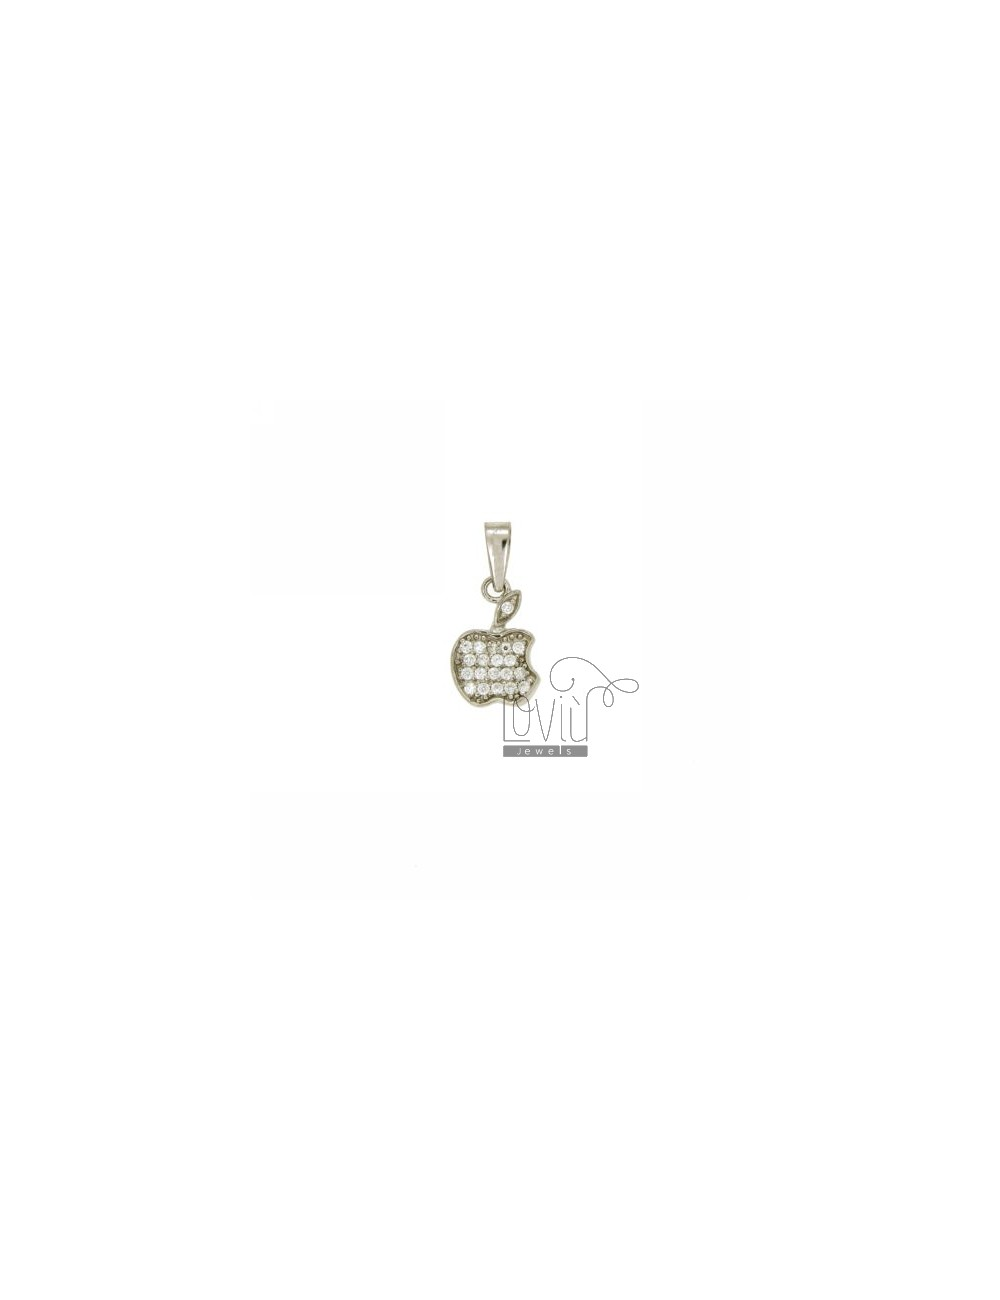 Pendant APPLE VICE 14x9 MM IN AG TIT 925 ‰ AND ZIRCONIA